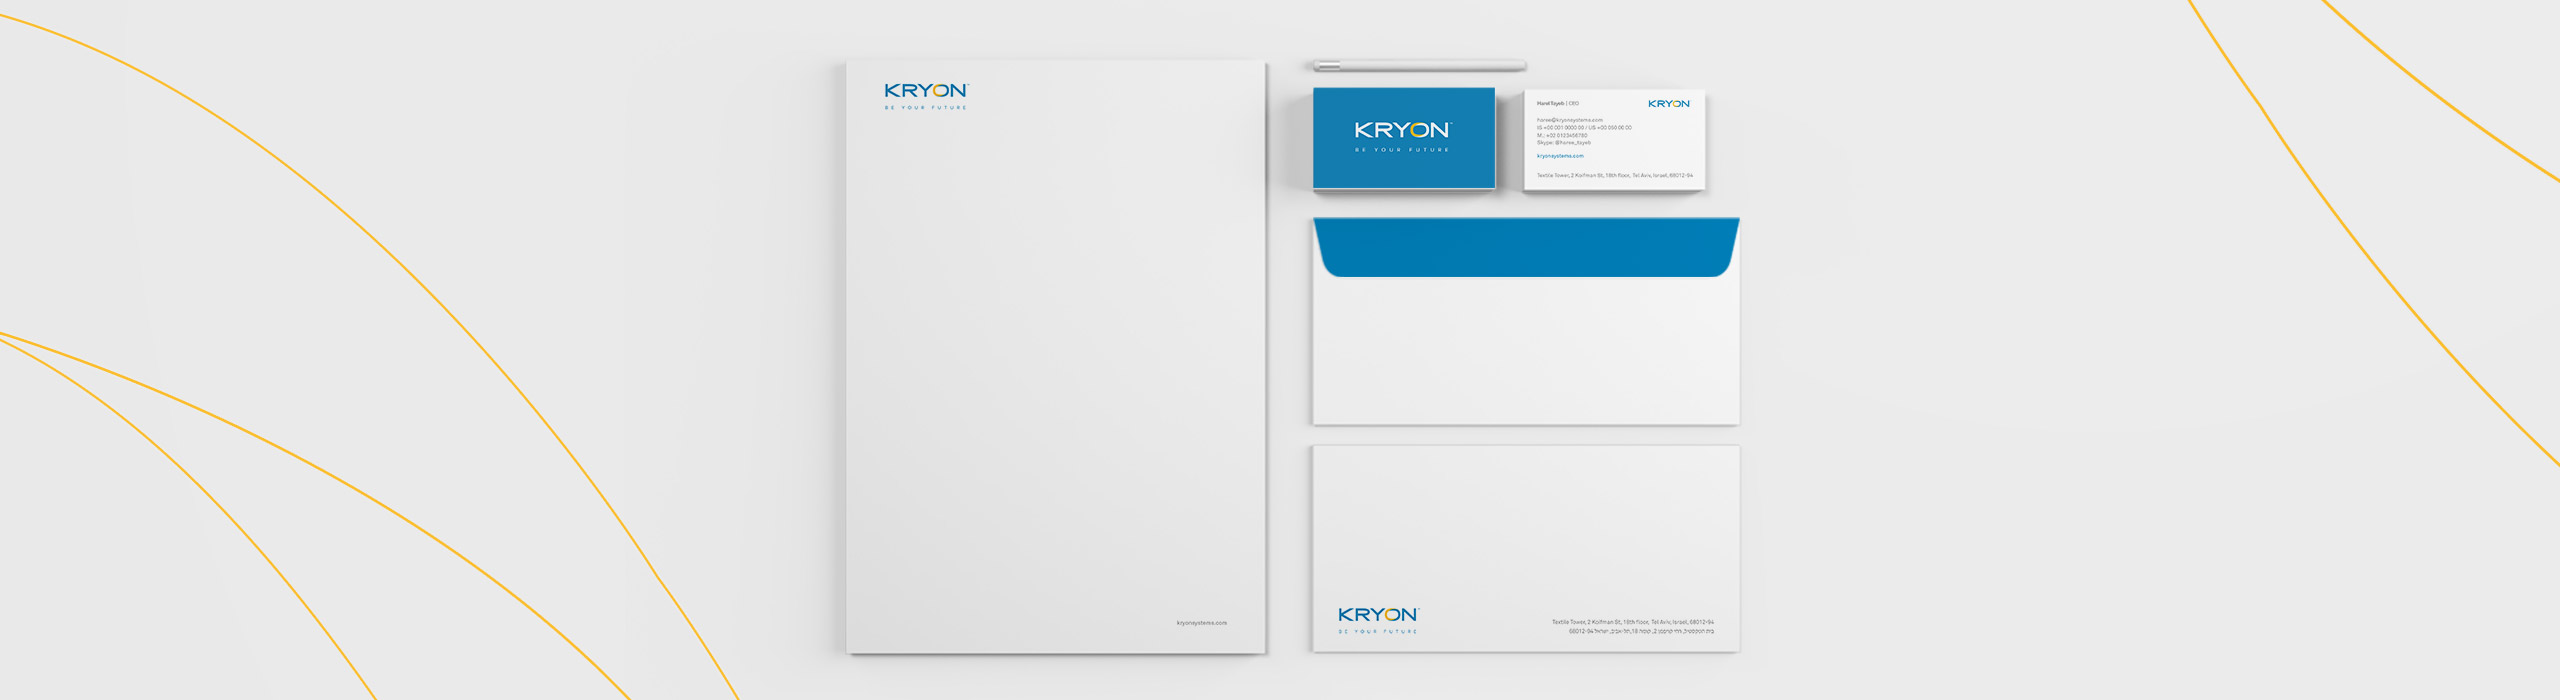 Kryon - 6 - Natie Branding Agency